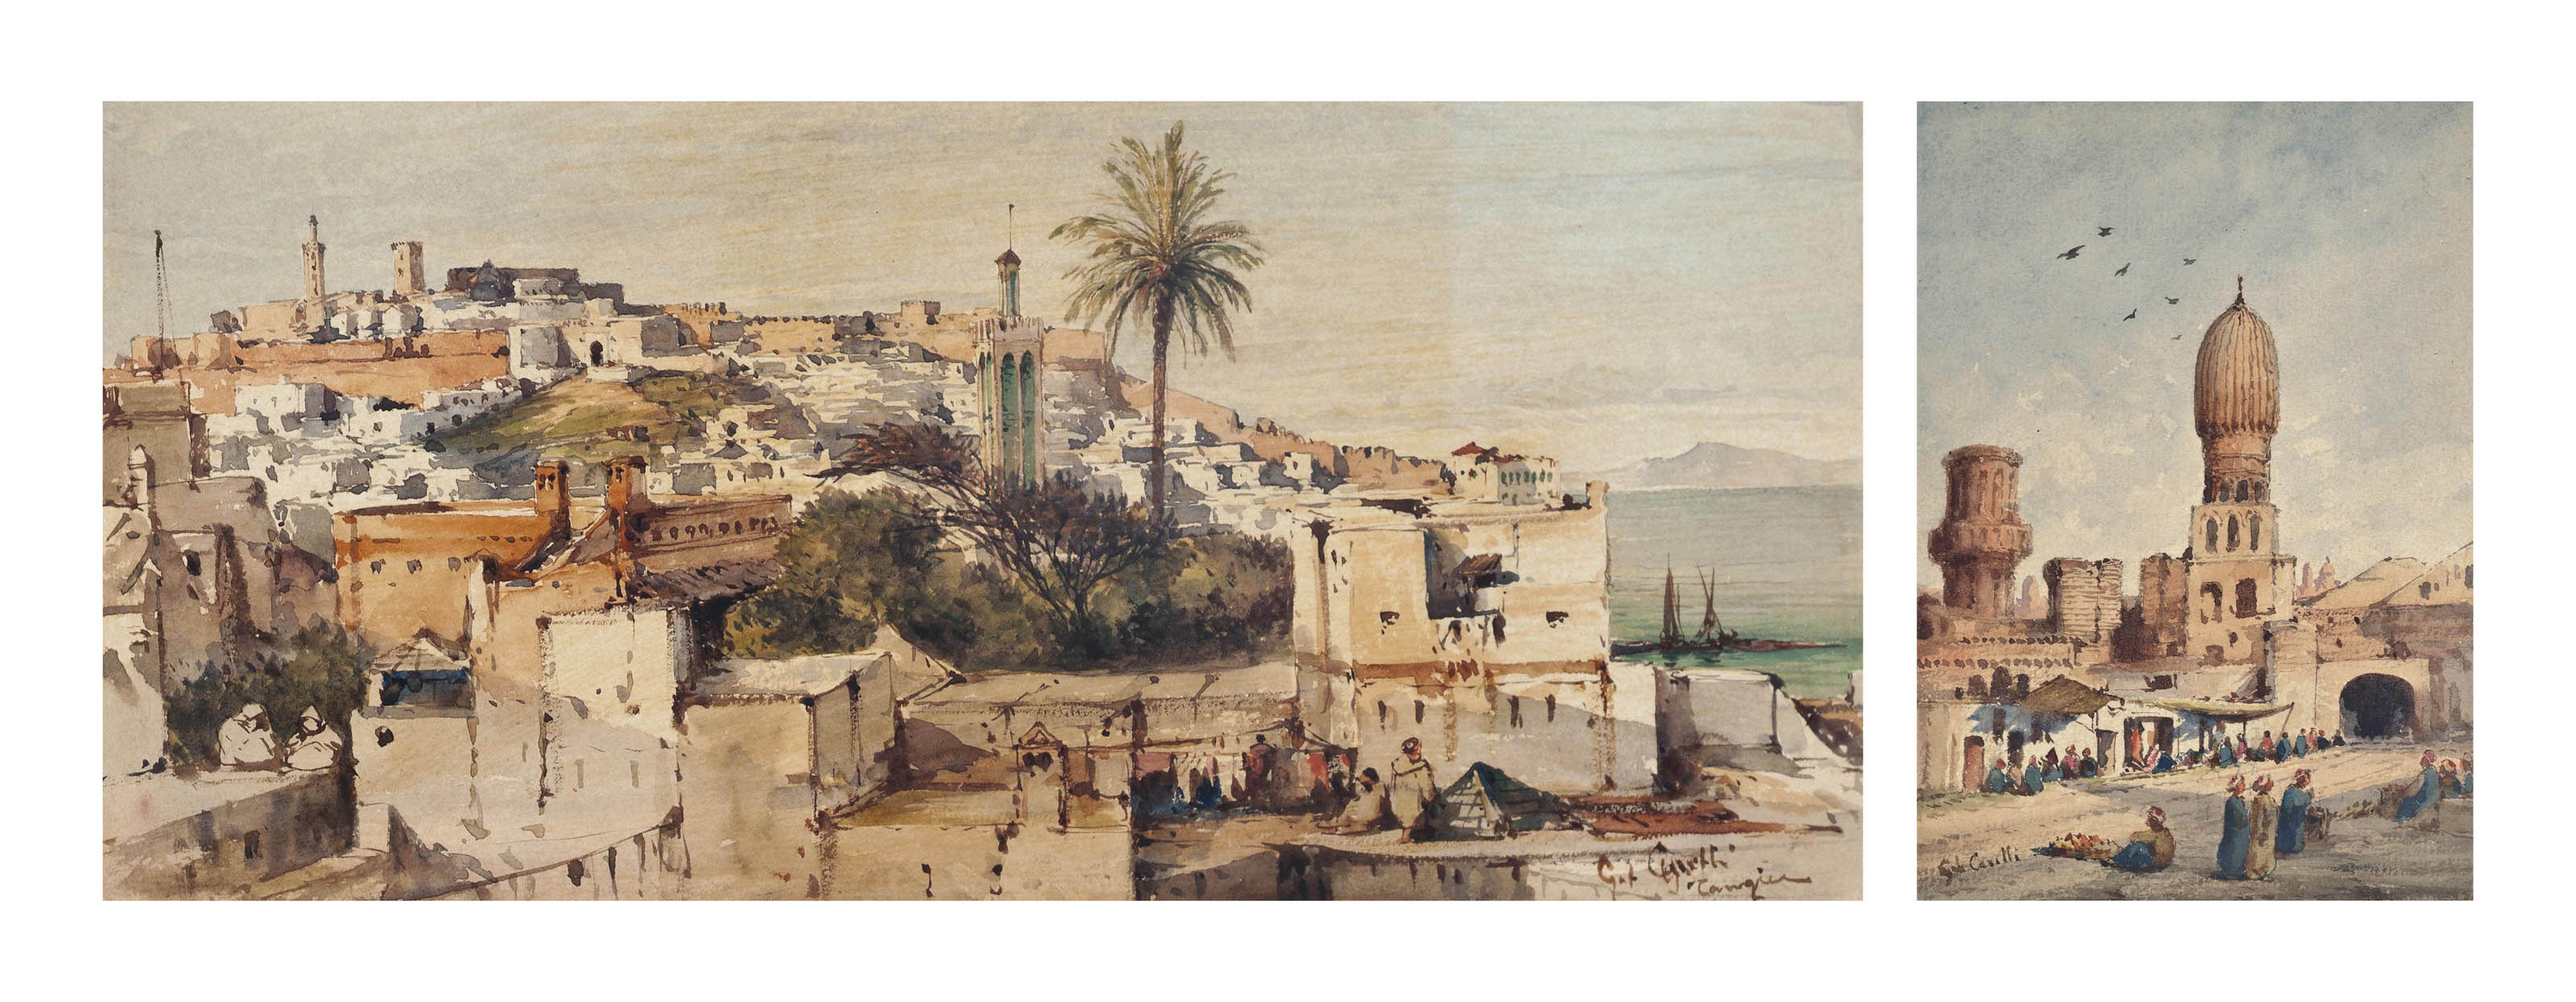 Arabs on the rooftops of Tangier, the Strait of Gibraltar beyond; and Arabs selling goods at the walls of Tangier